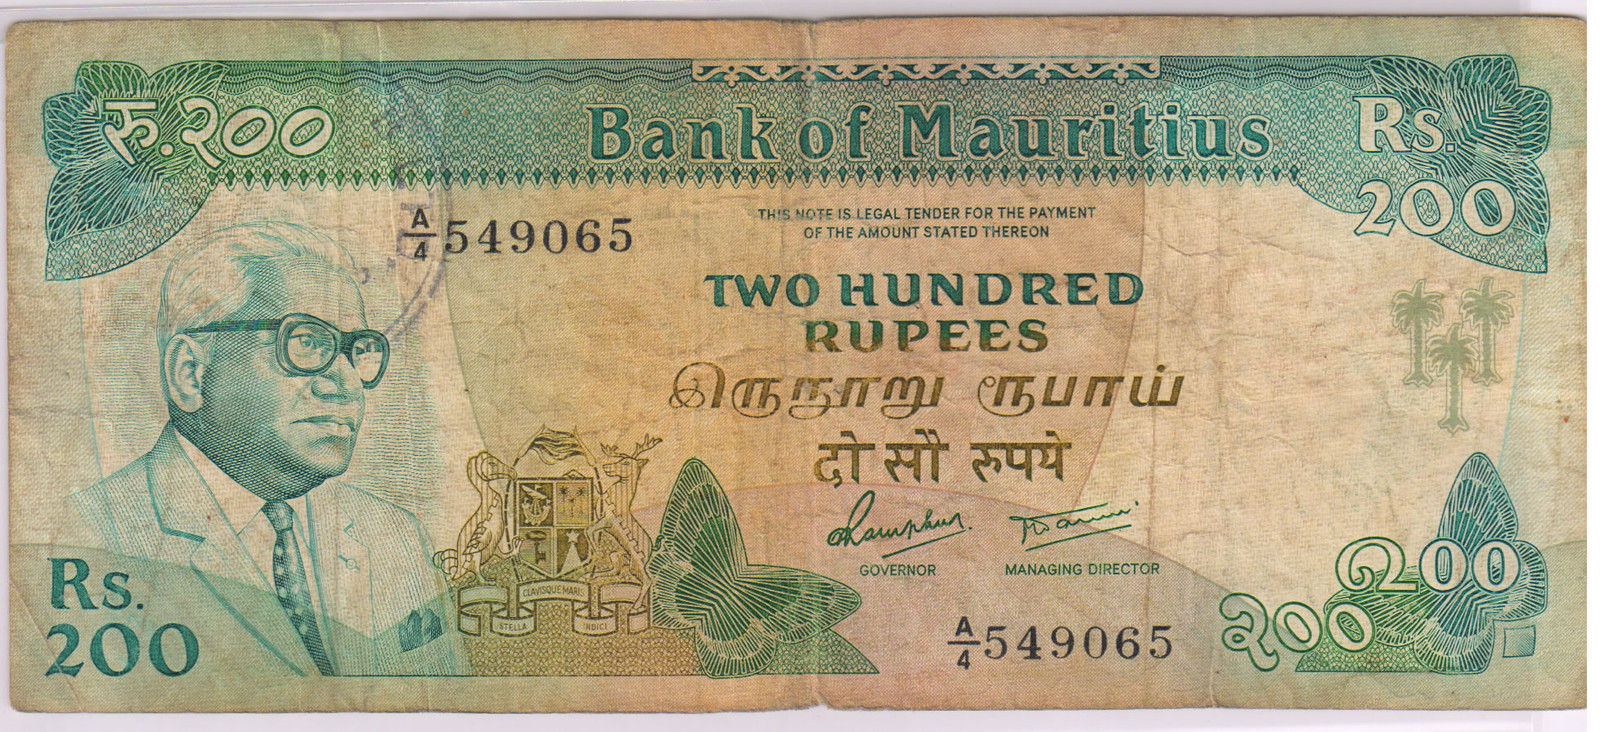 Mauritius - 200 rupee 1985 used currency note